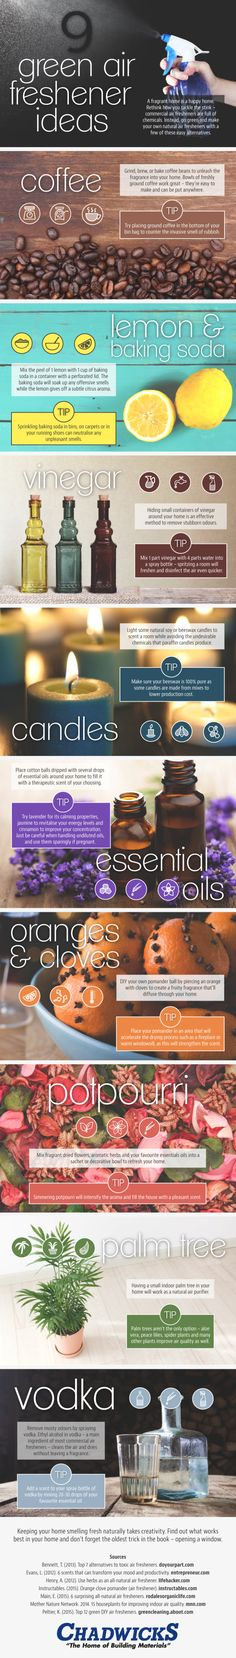 Air Fresheners: 9 DIY Natural Alternatives to Commercial Deodorizer  [by Chadwicks -- via #tipsographic]. More at tipsographic.com